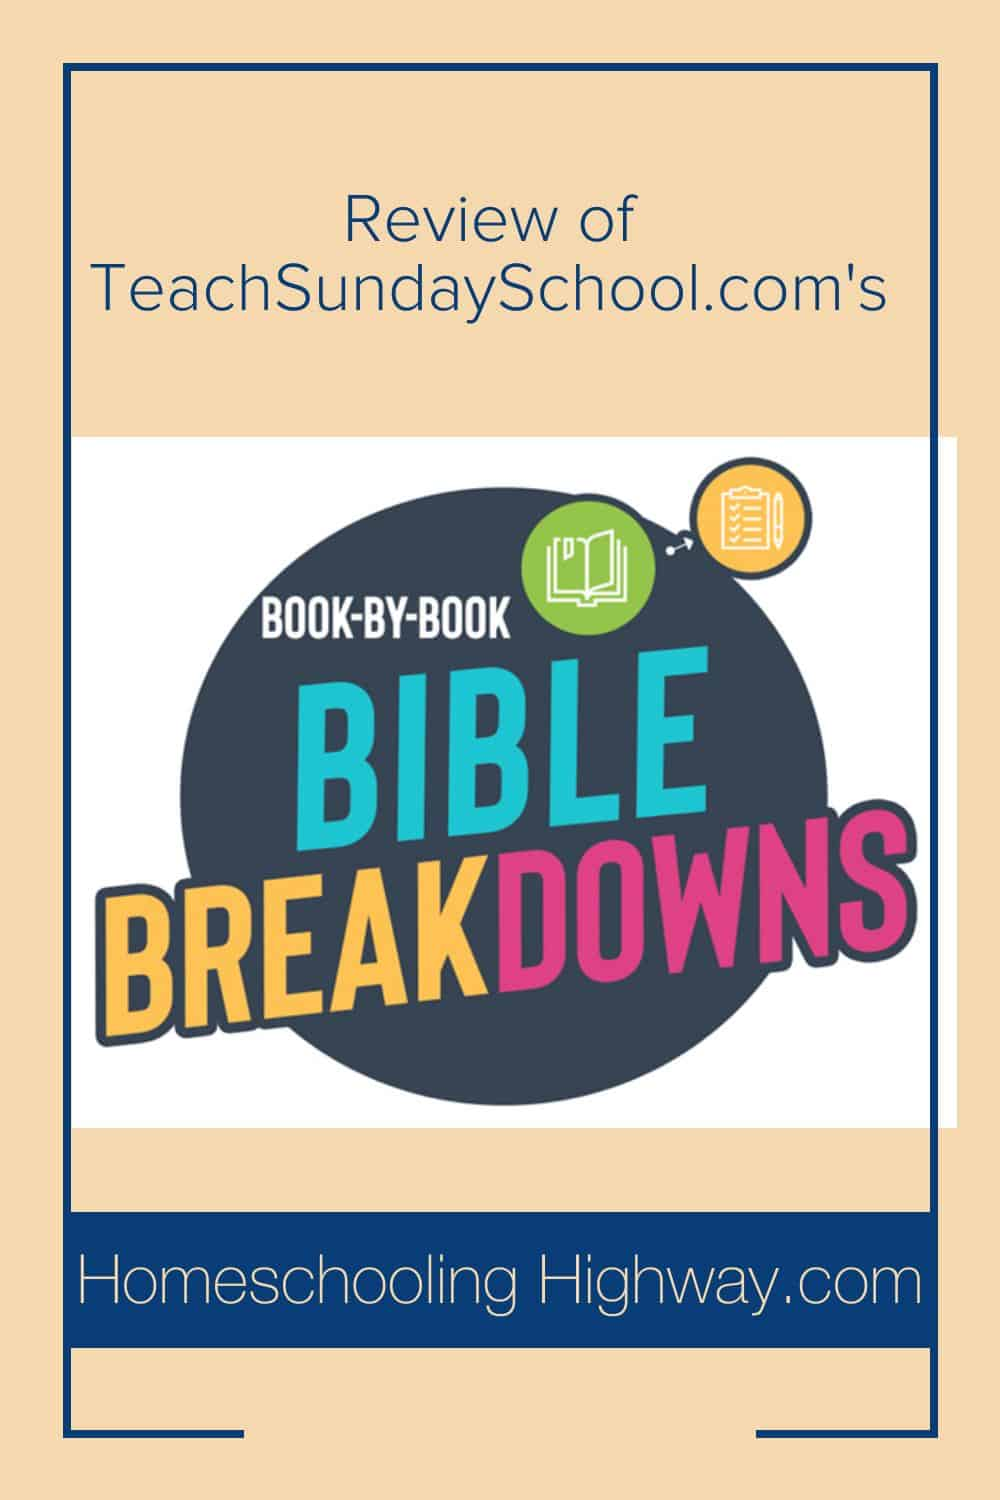 Bible Breakdowns: A Biblical Product Review